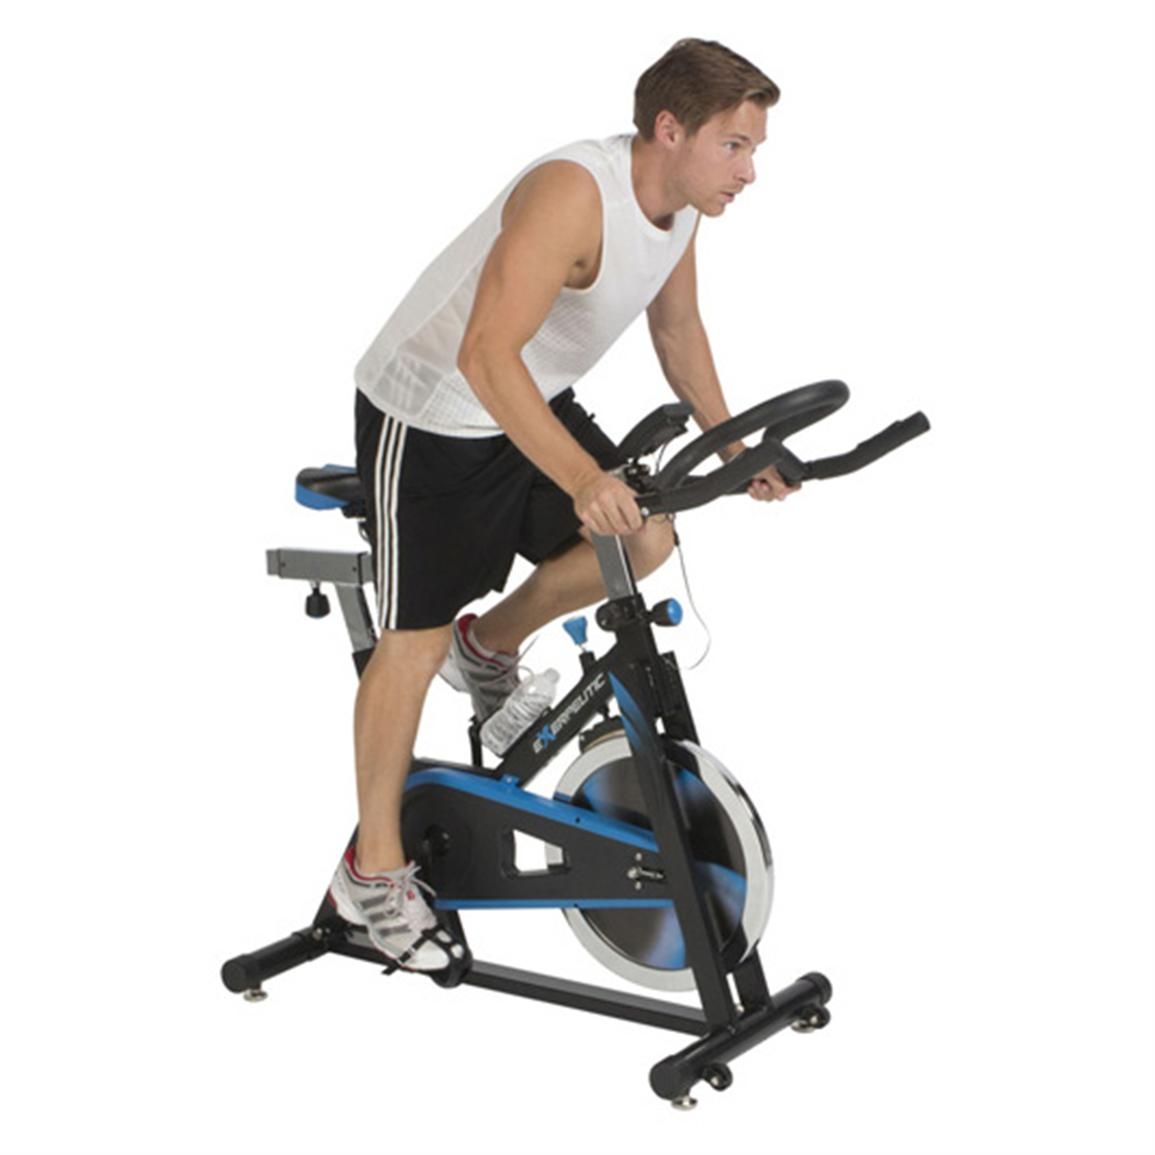 Exerpeutic LX7 Training Cycle With Heart Pulse